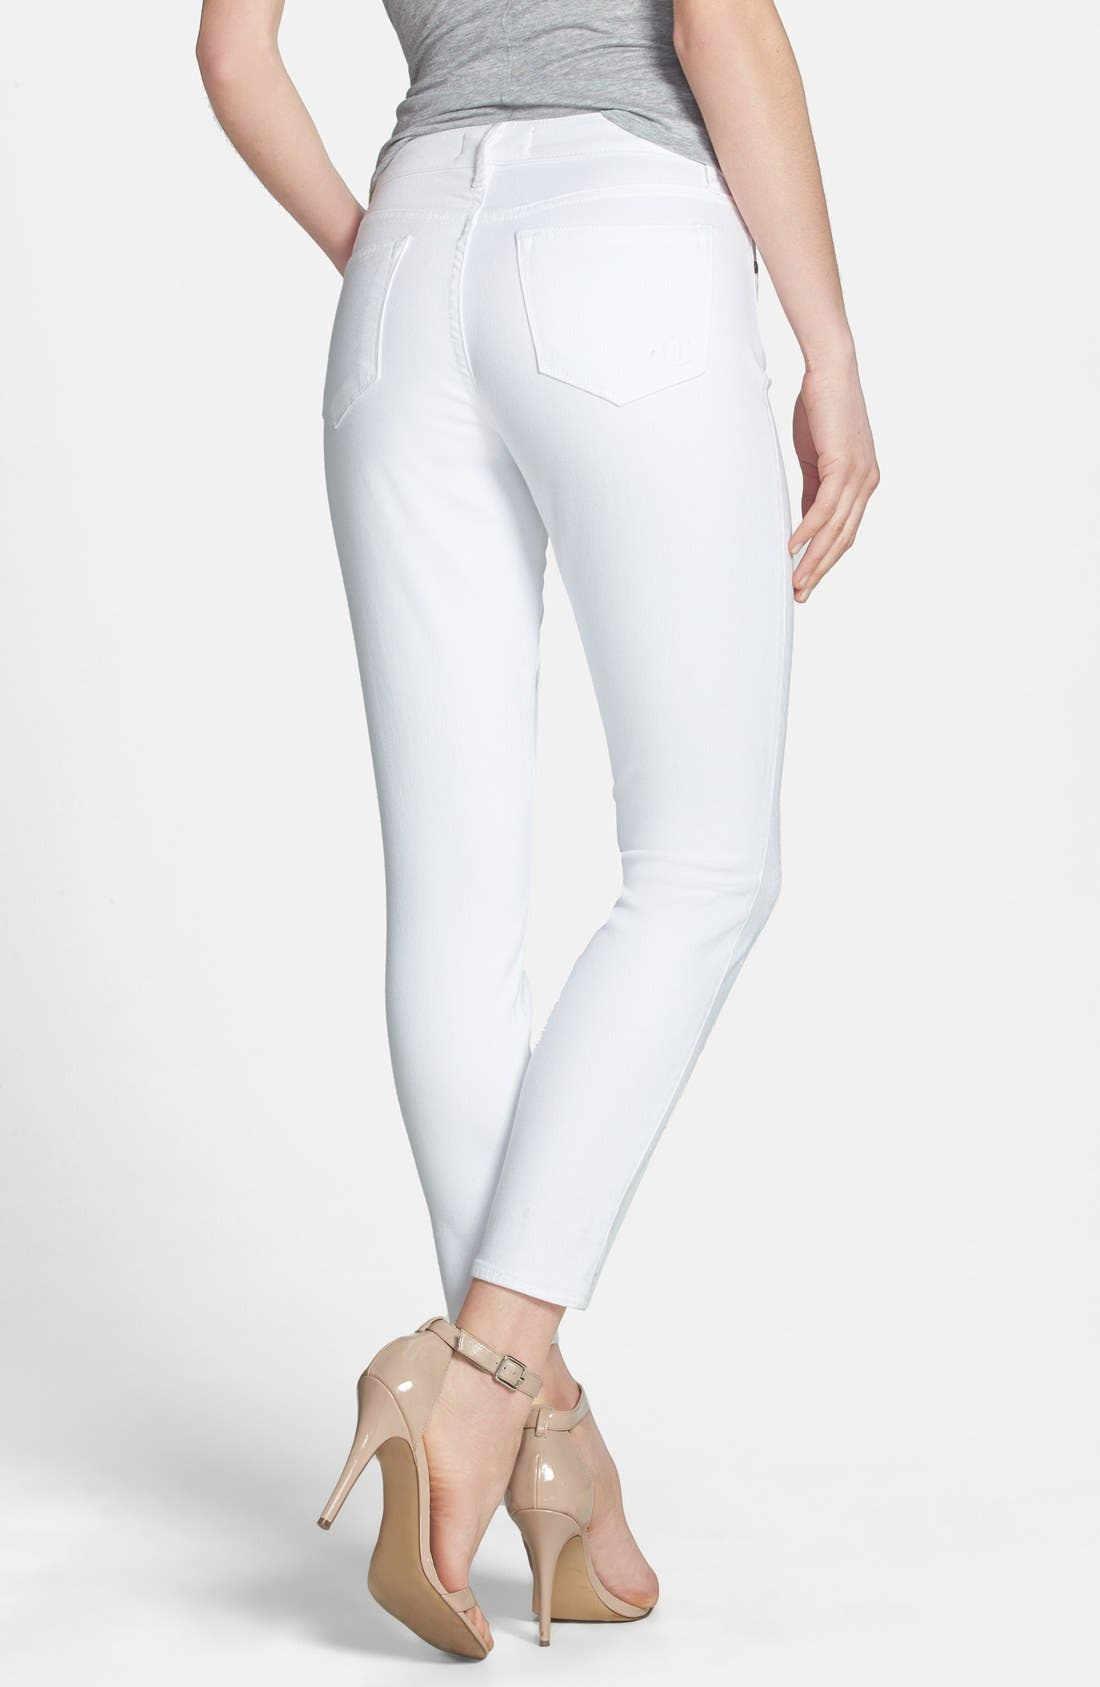 Alternate Image 2  - CJ by Cookie Johnson 'Wisdom' Eyelet Detail Ankle Skinny Jeans (Optic White)